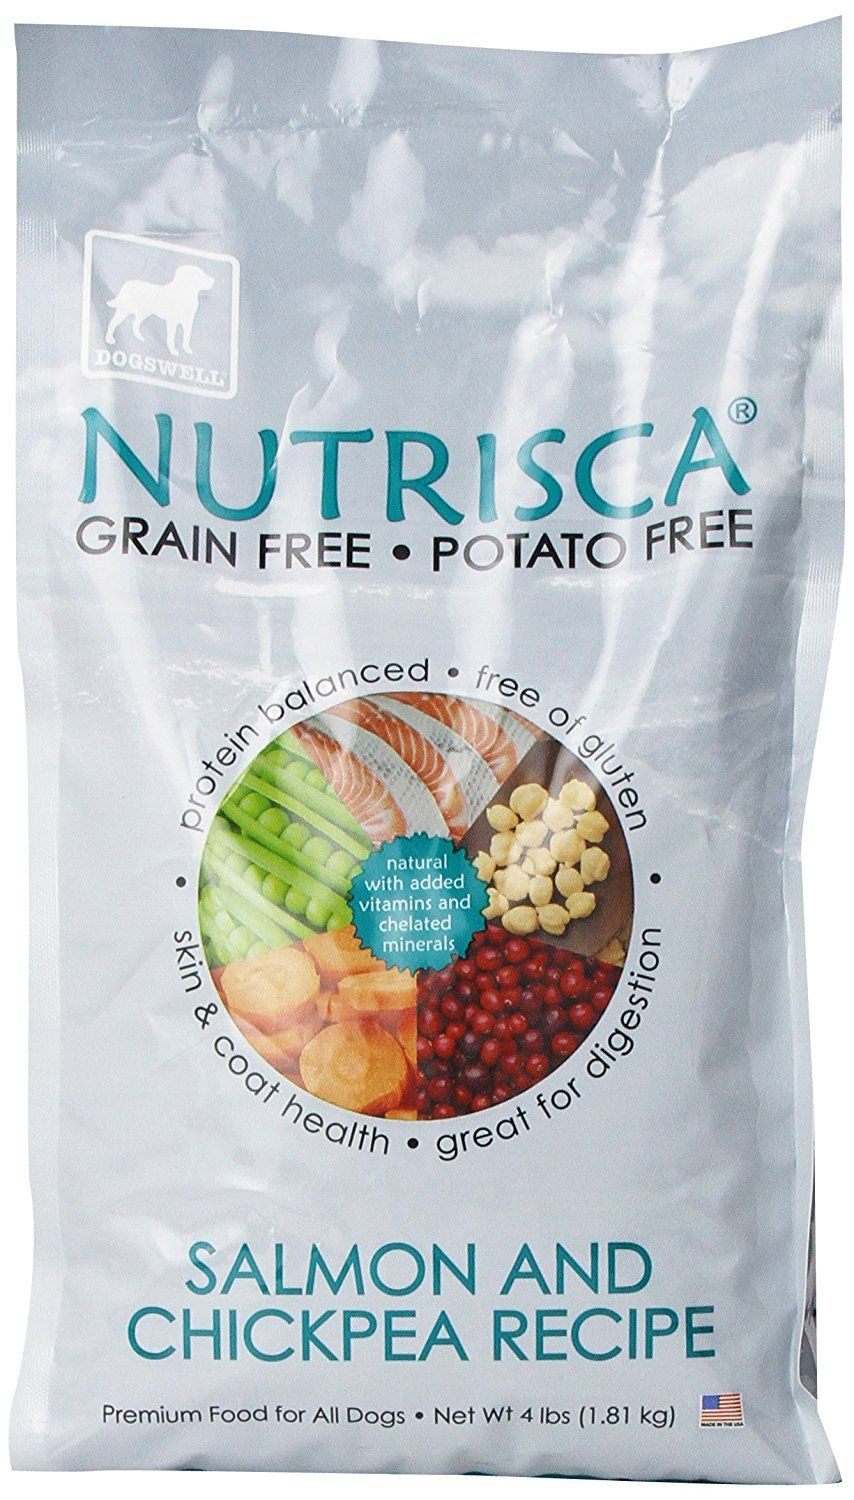 Dogswell nutrisca dog food salmon and chickpea 4pound